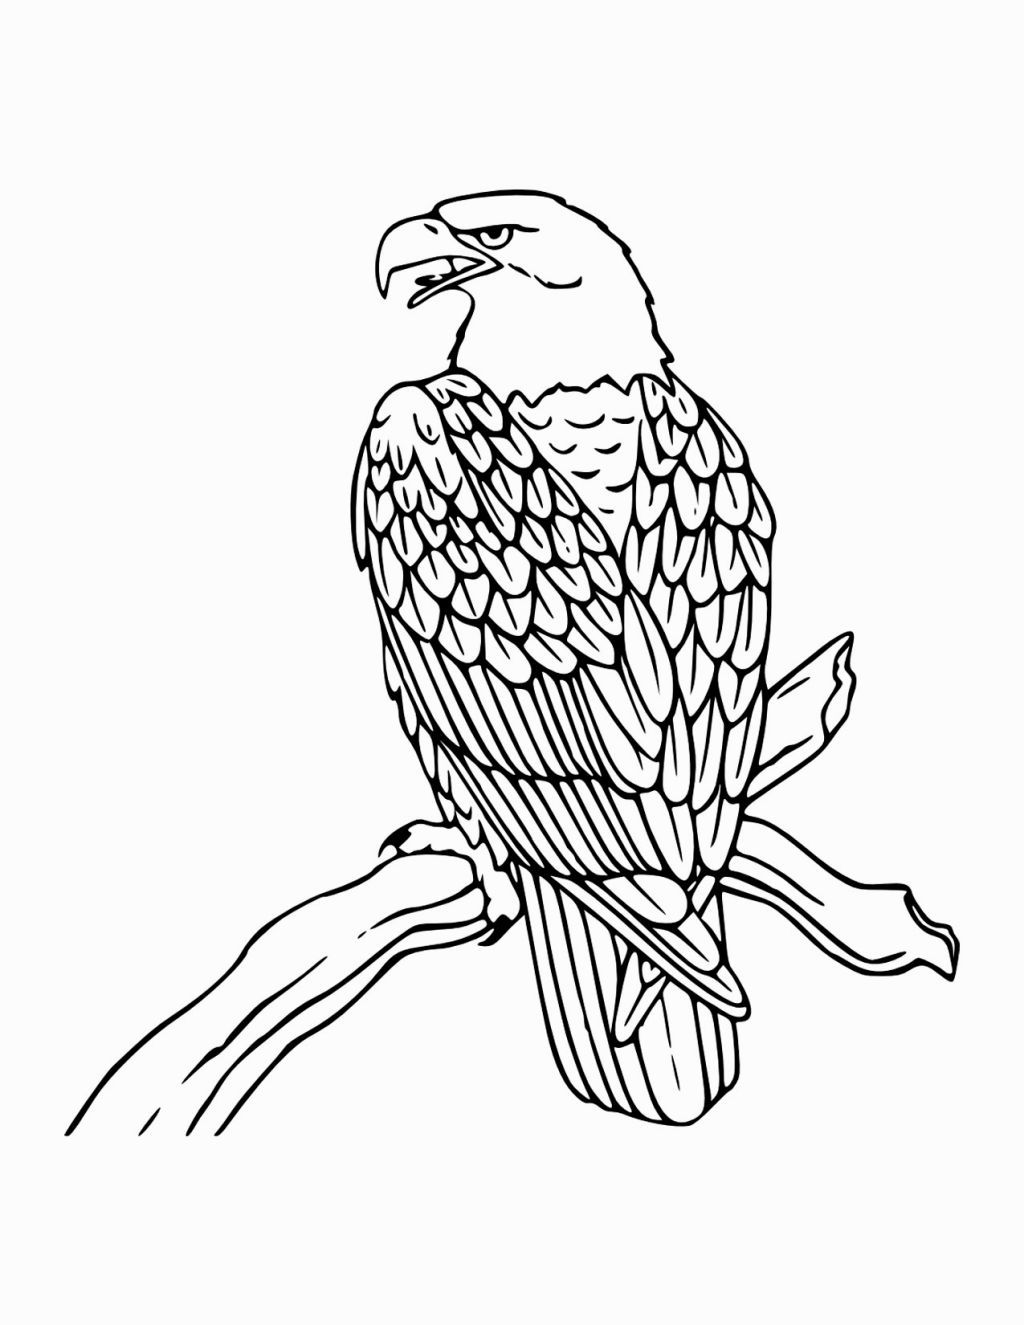 Bald Eagle Coloring Sheet